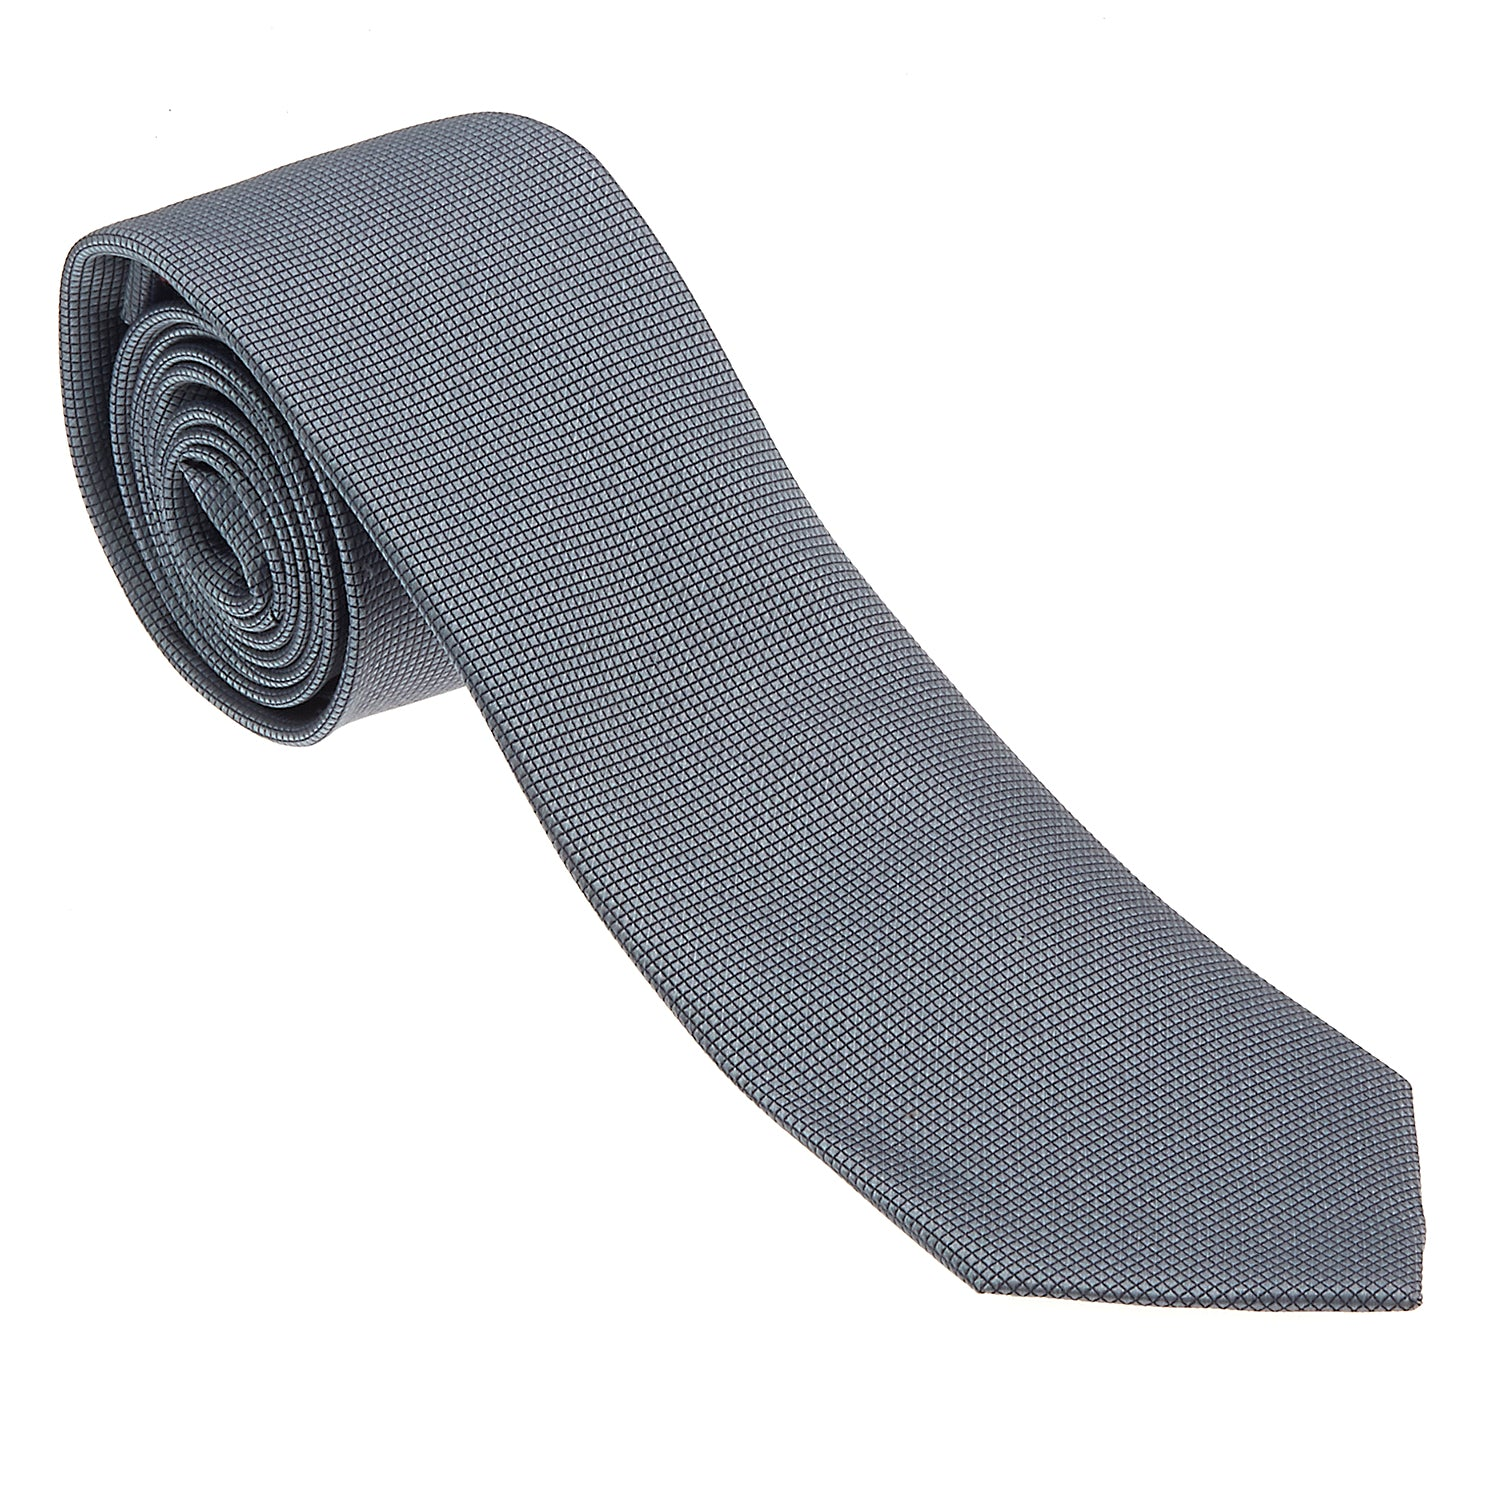 Medium Grey Tie-The Suit Spot-Wedding Suits-Wedding Tuxedos-Groomsmen Suits-Groomsmen Tuxedos-Slim Fit Suits-Slim Fit Tuxedos-Online wedding suits